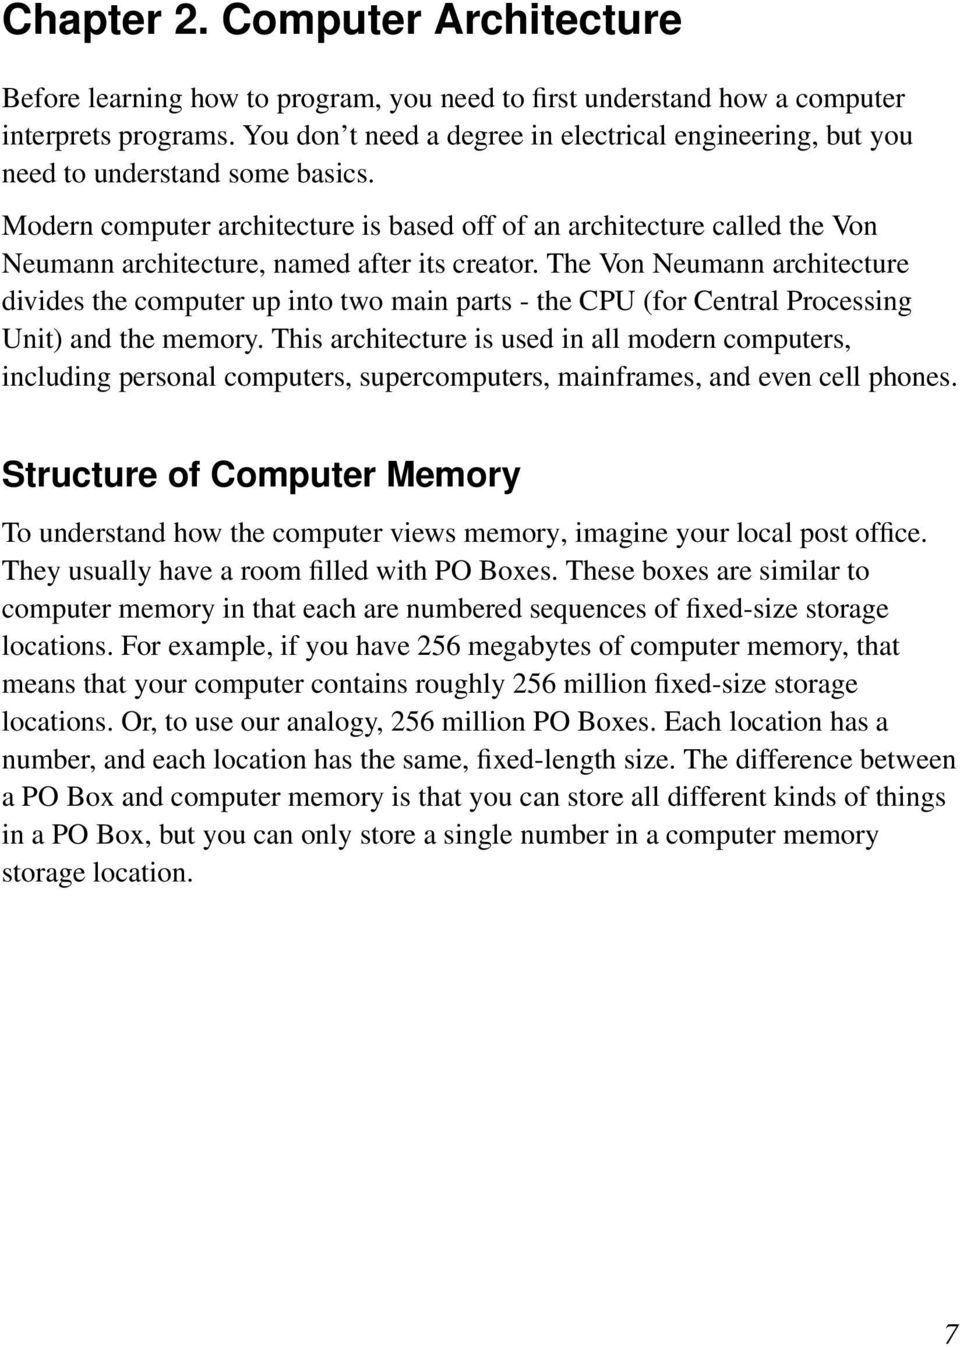 Modern computer architecture is based off of an architecture called the Von Neumann architecture, named after its creator.